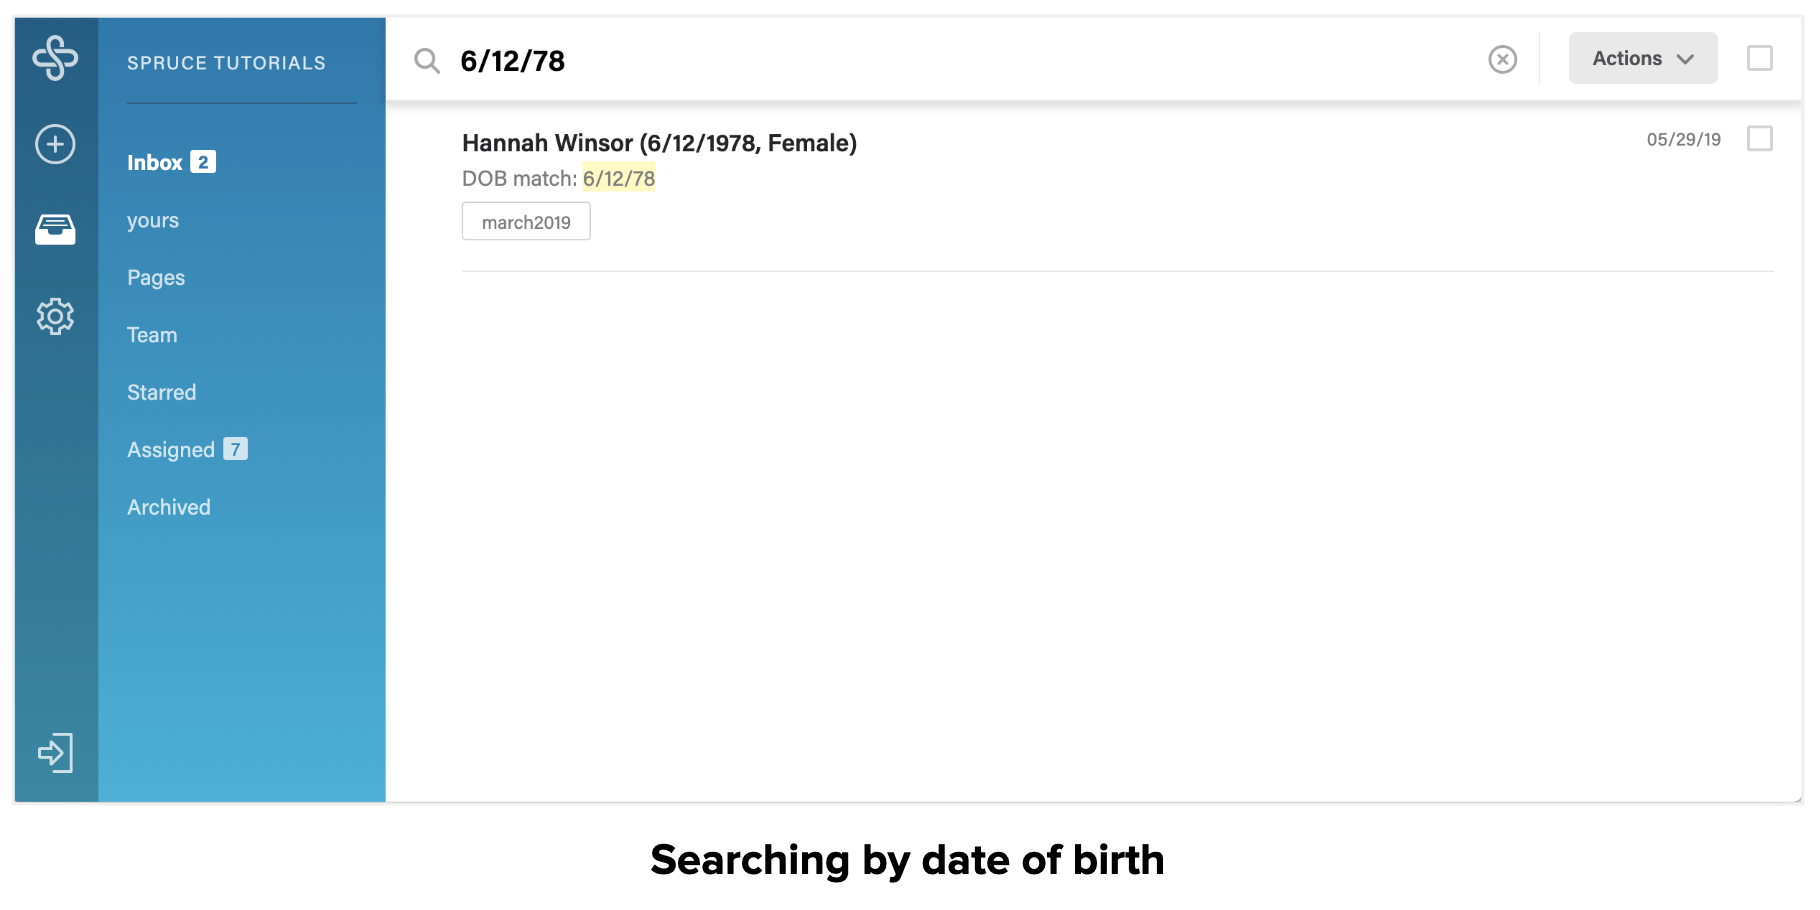 Searching by date of birth